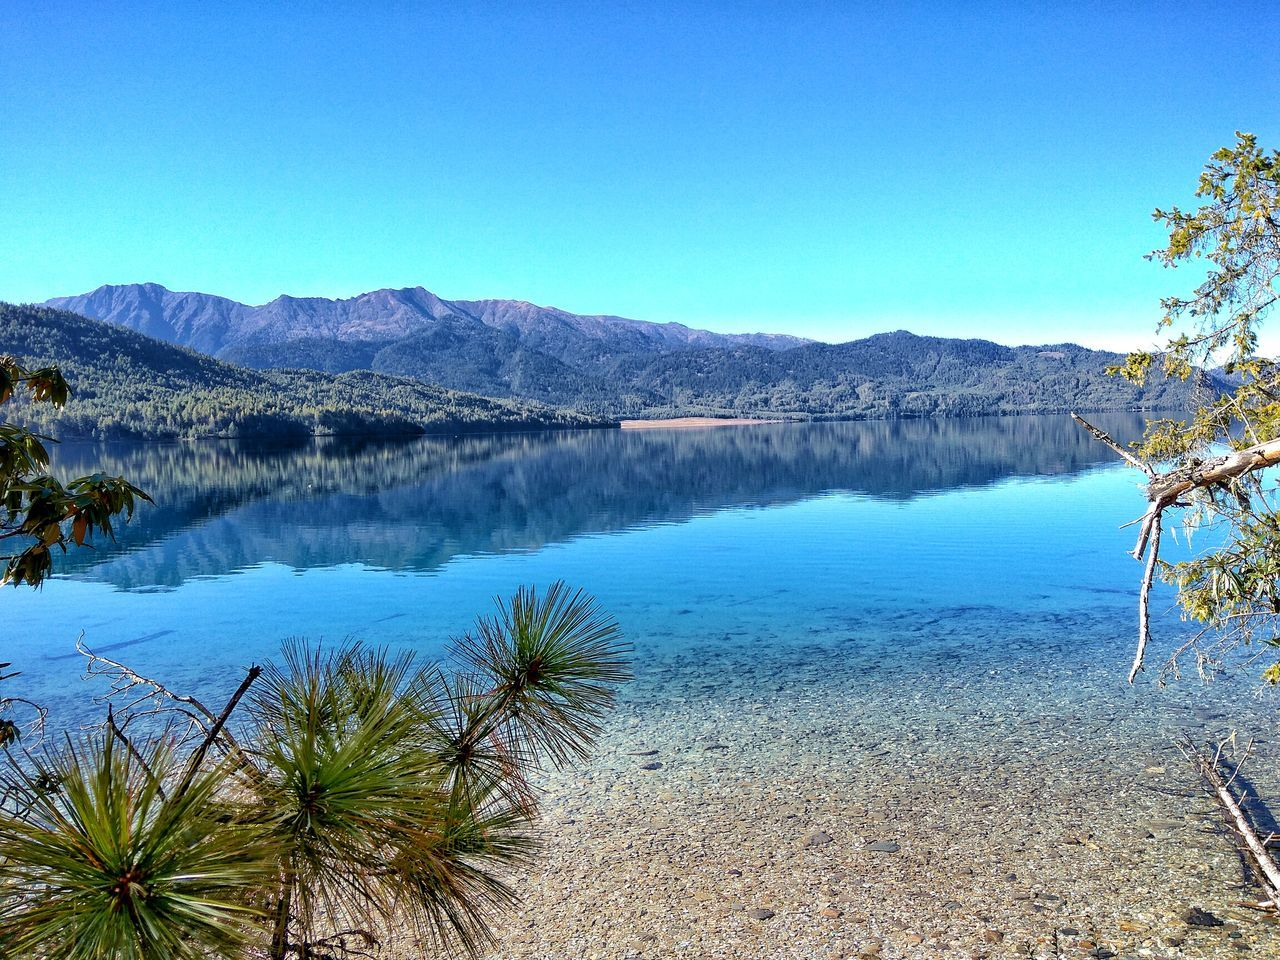 tranquil scene, blue, nature, tranquility, beauty in nature, scenics, mountain, clear sky, no people, day, lake, water, outdoors, mountain range, tree, sky